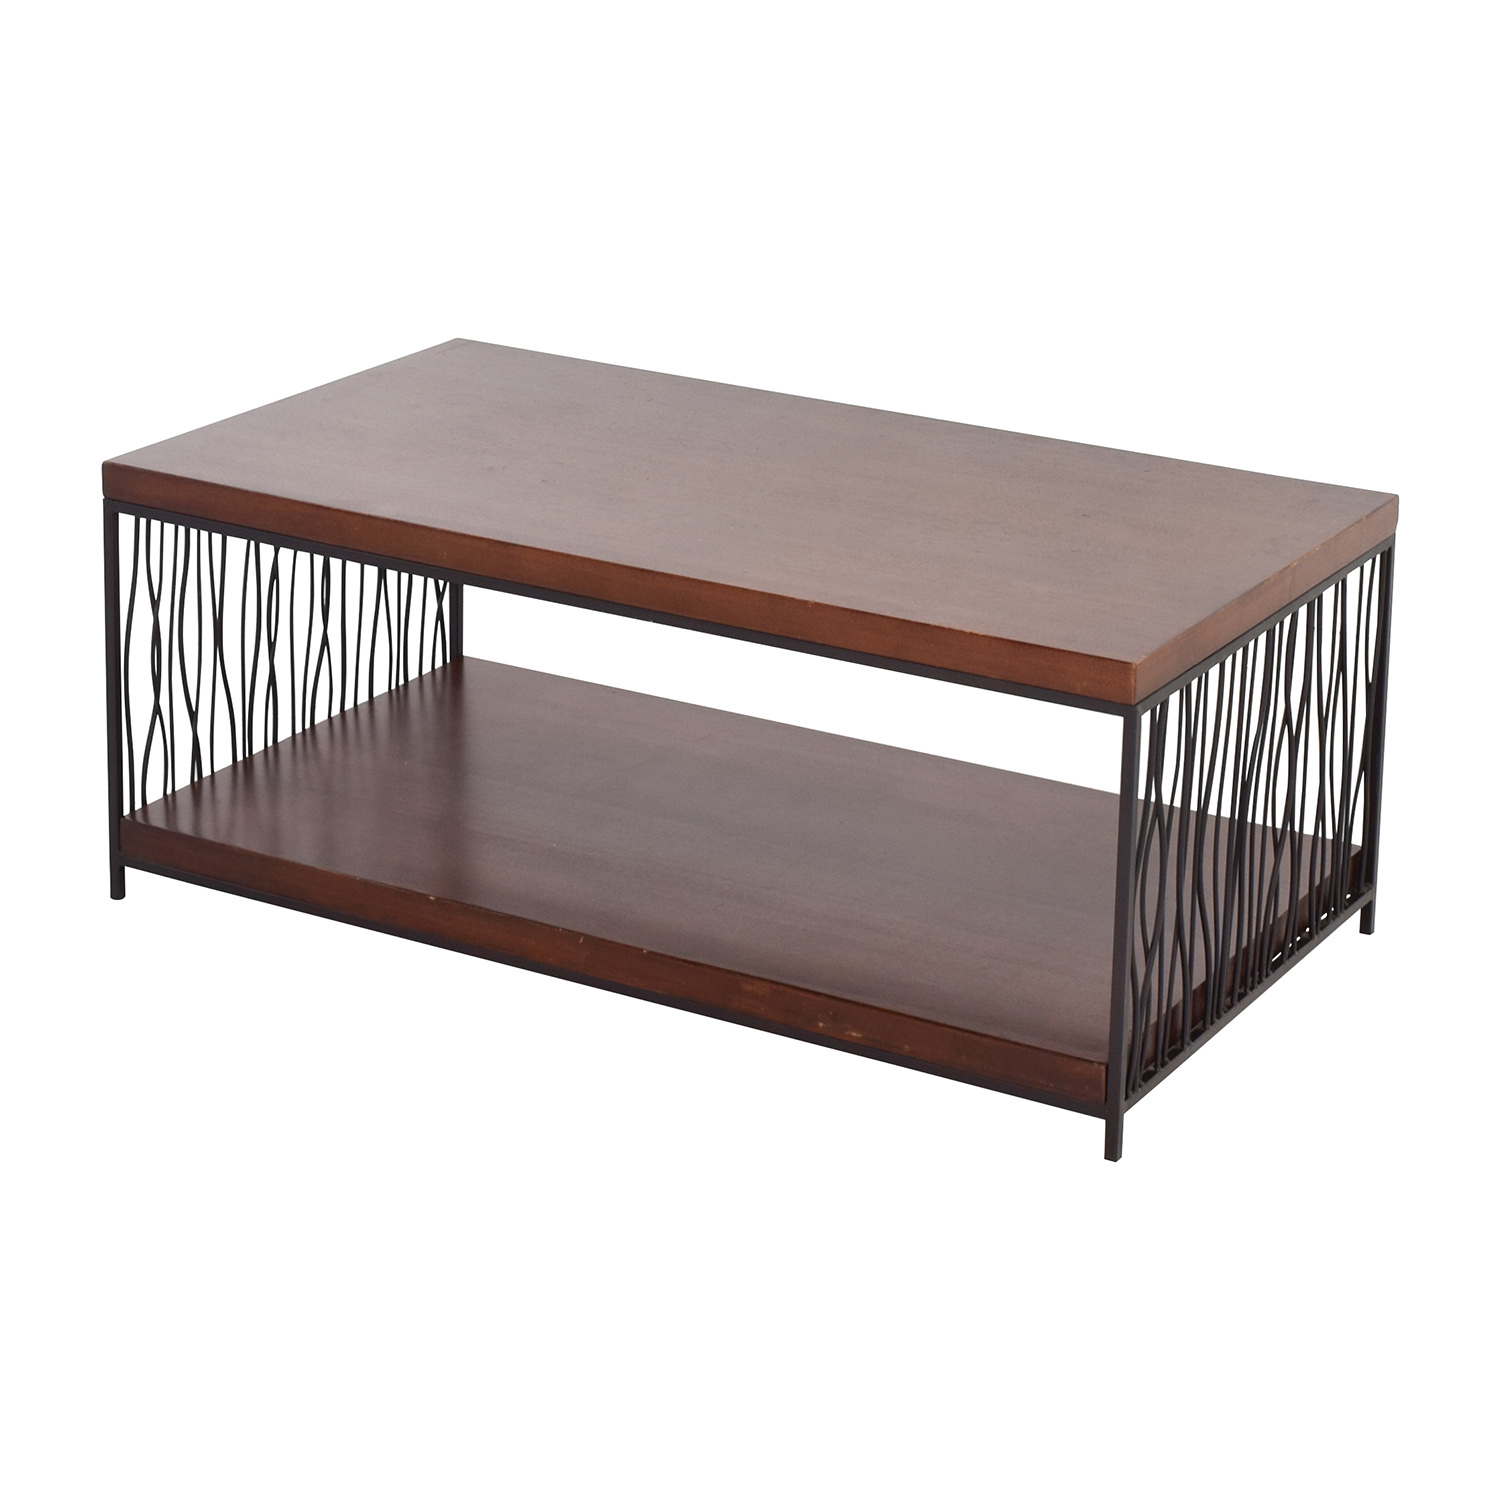 75 Off Crate And Barrel Crate Barrel Coffee Table Tables